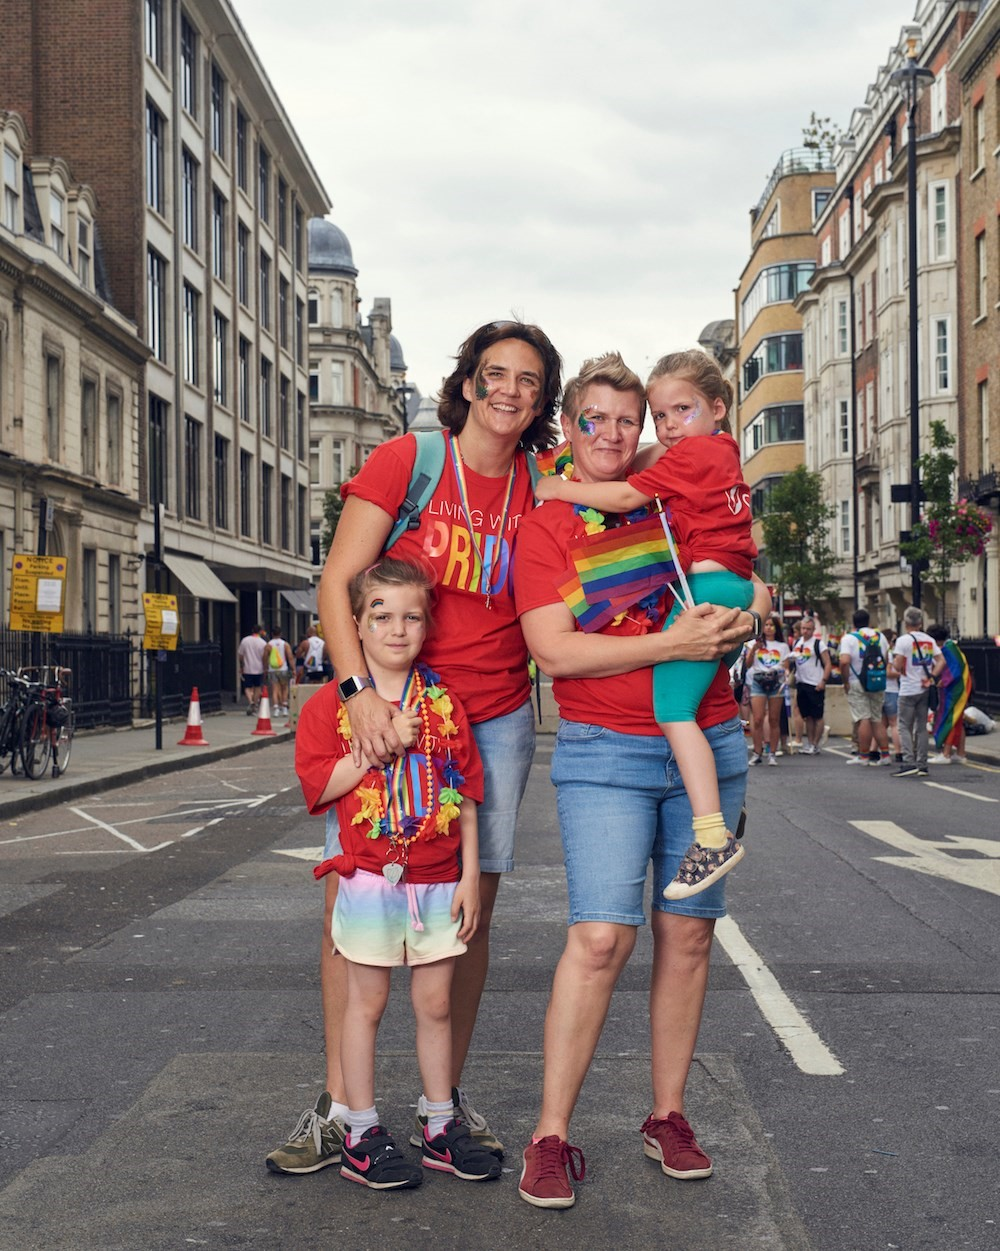 London Pride 2019 Sean Alexander Geraghty LGBTQ Photography